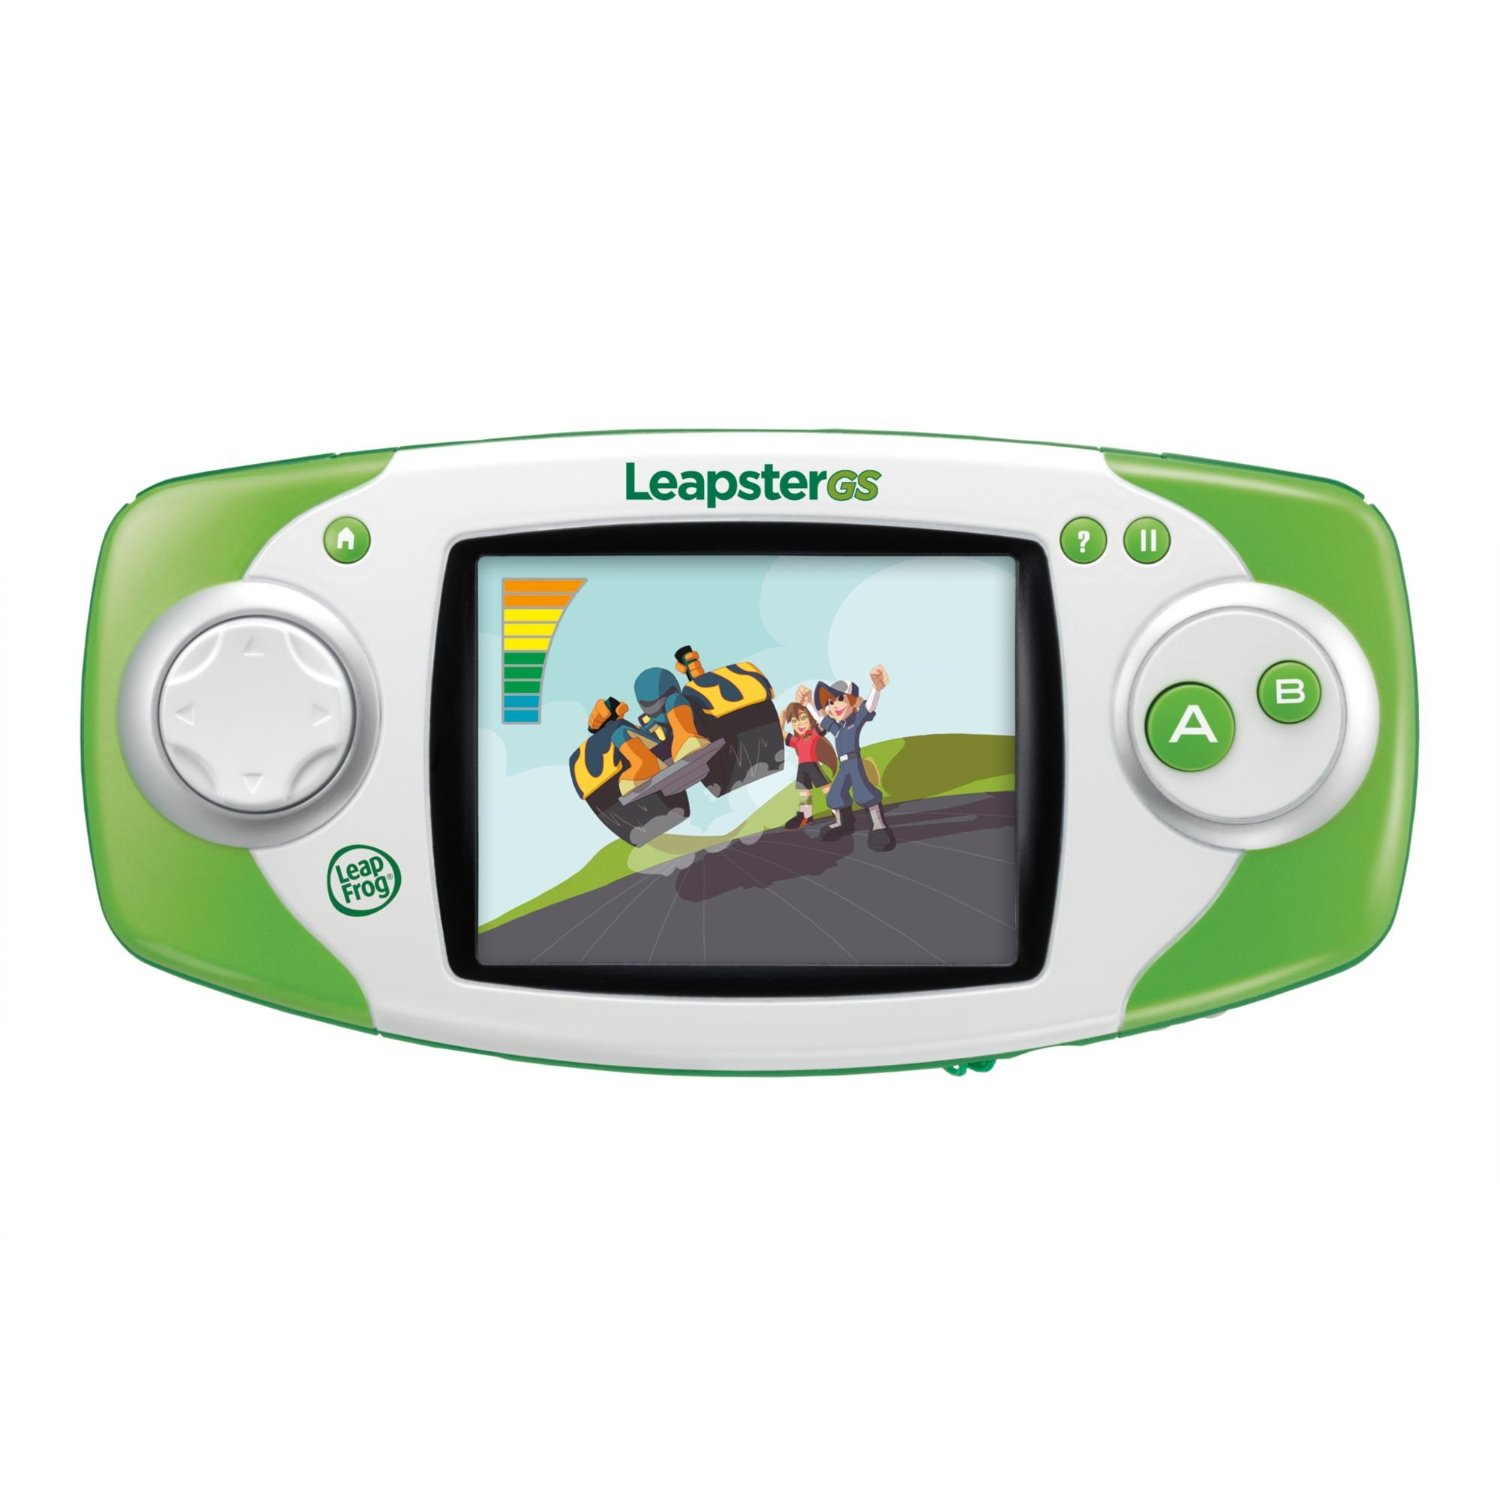 LEAPSTER GS GAMES. Trending Deals Hot deal. 76% Off $ $ Leapster Explorer GS Leap Frog Game System Bundle w/ Art Adventure Pink White Used. $ view deal LEAP FROG LEAP PAD LEAPSTER GS MATHEMATICS LEARNING GAME UMIZOOMI NEW YEARS New Free Shipping. $ view deal.